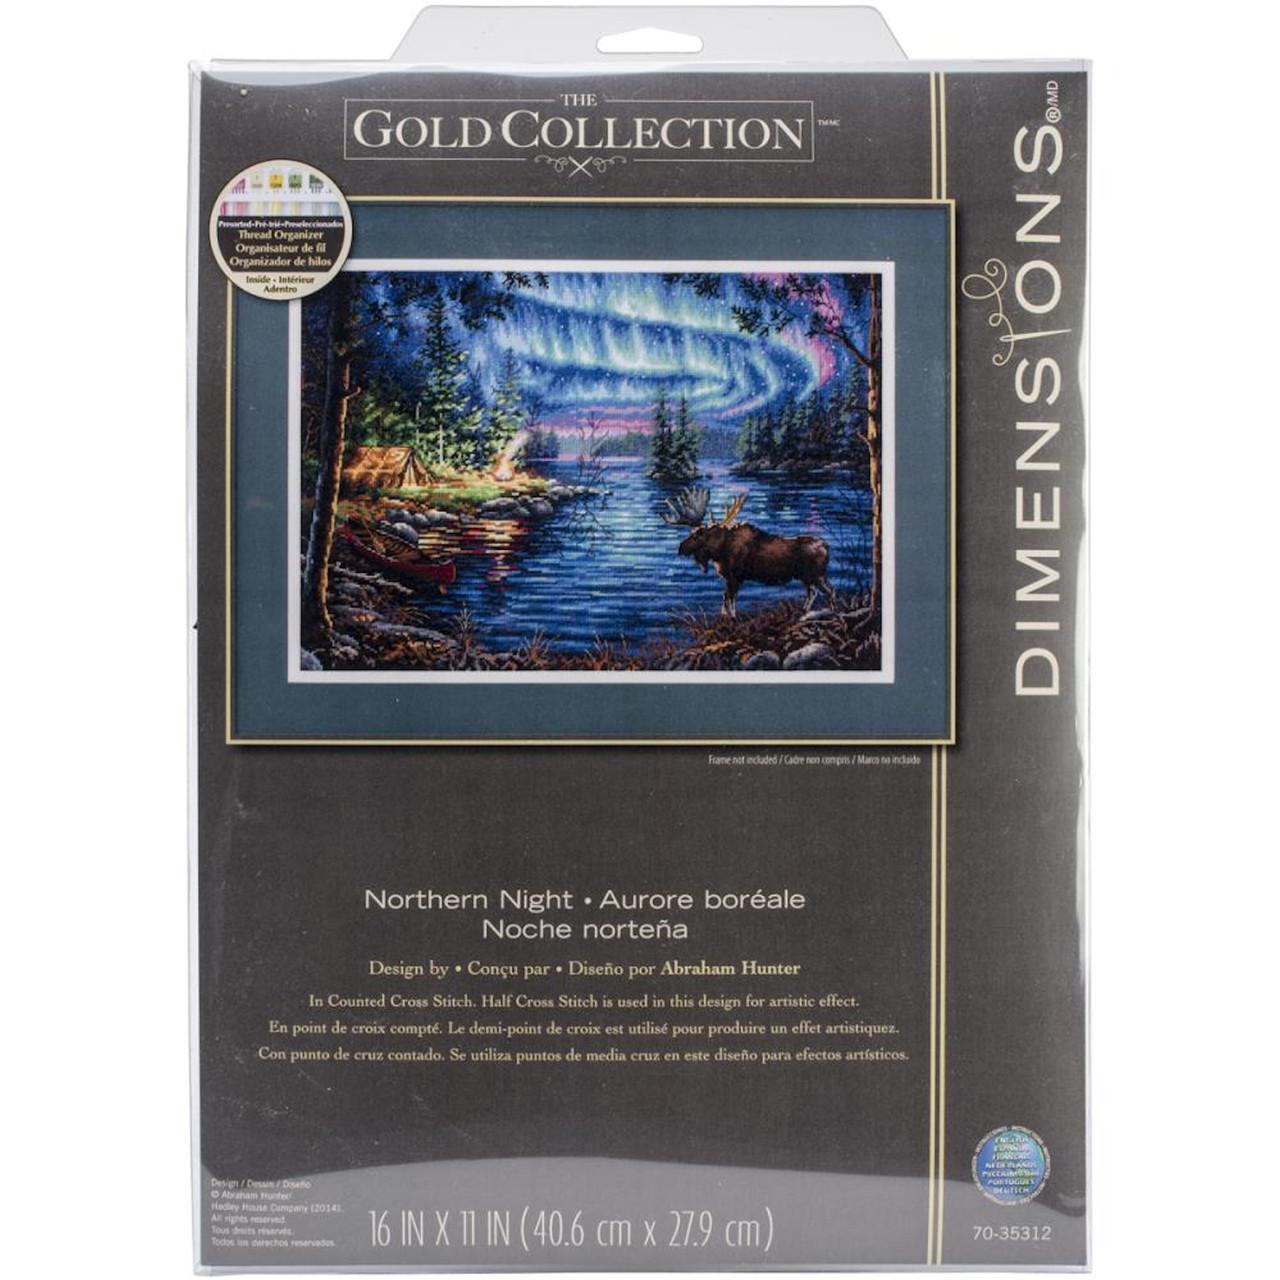 Gold Collection - Northern Night